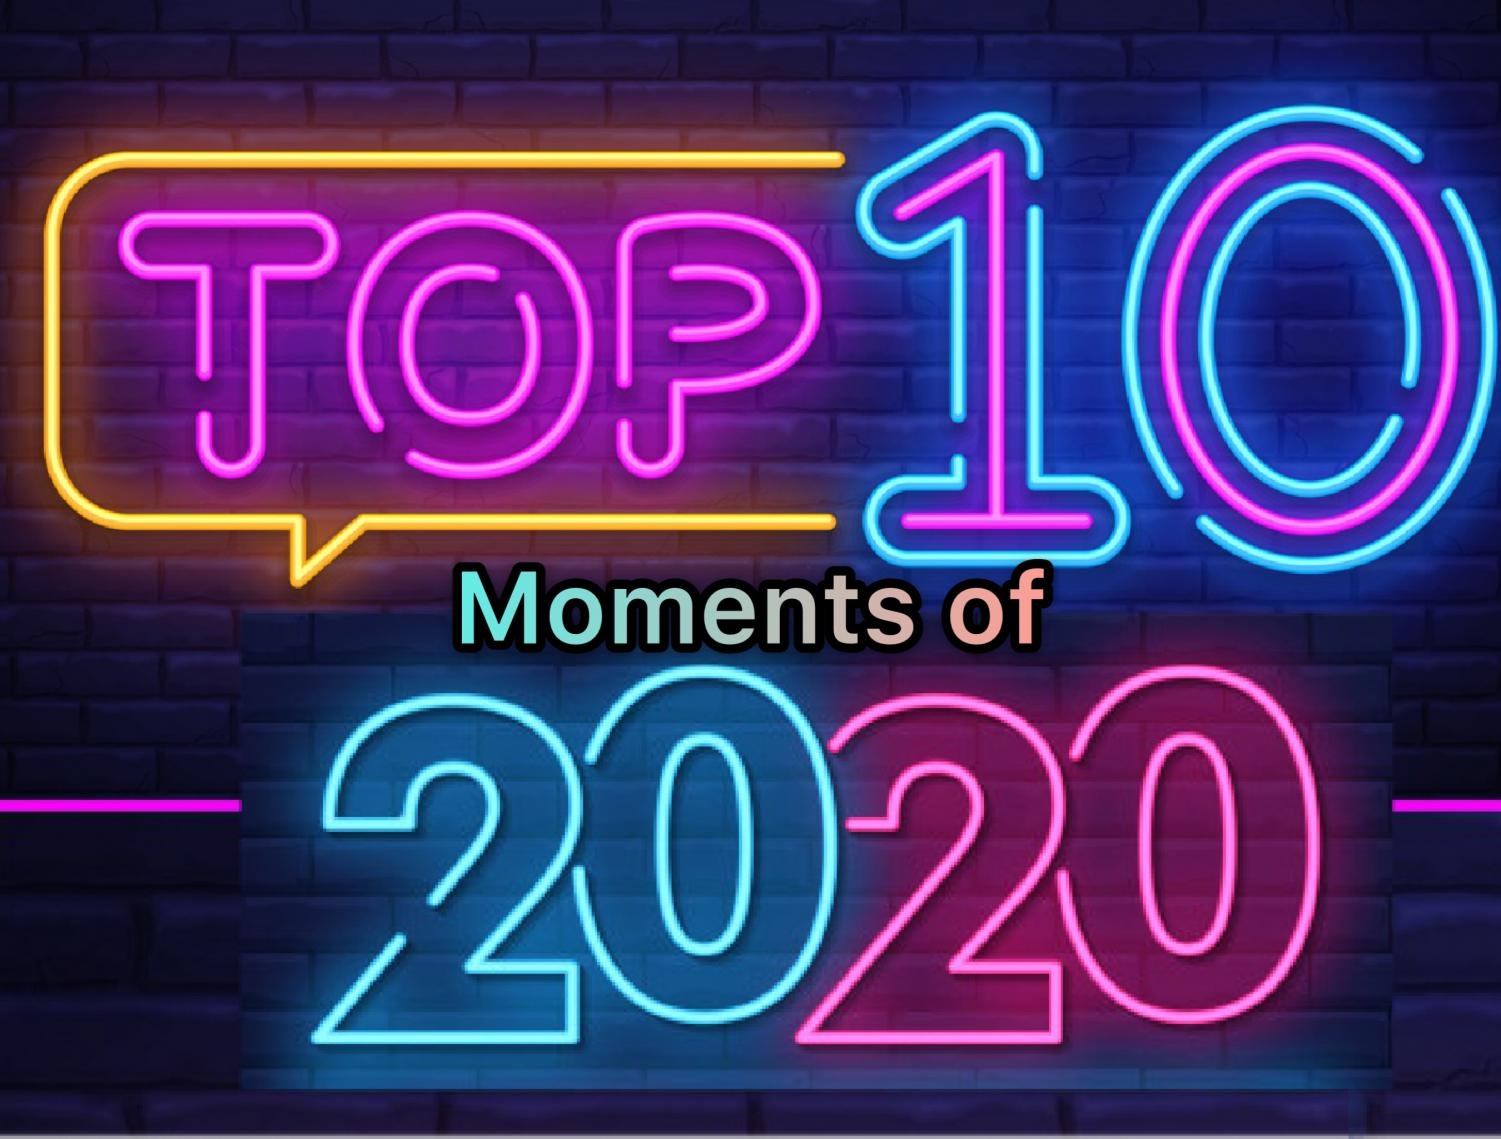 Finding a silver lining: 10 positives in 2020